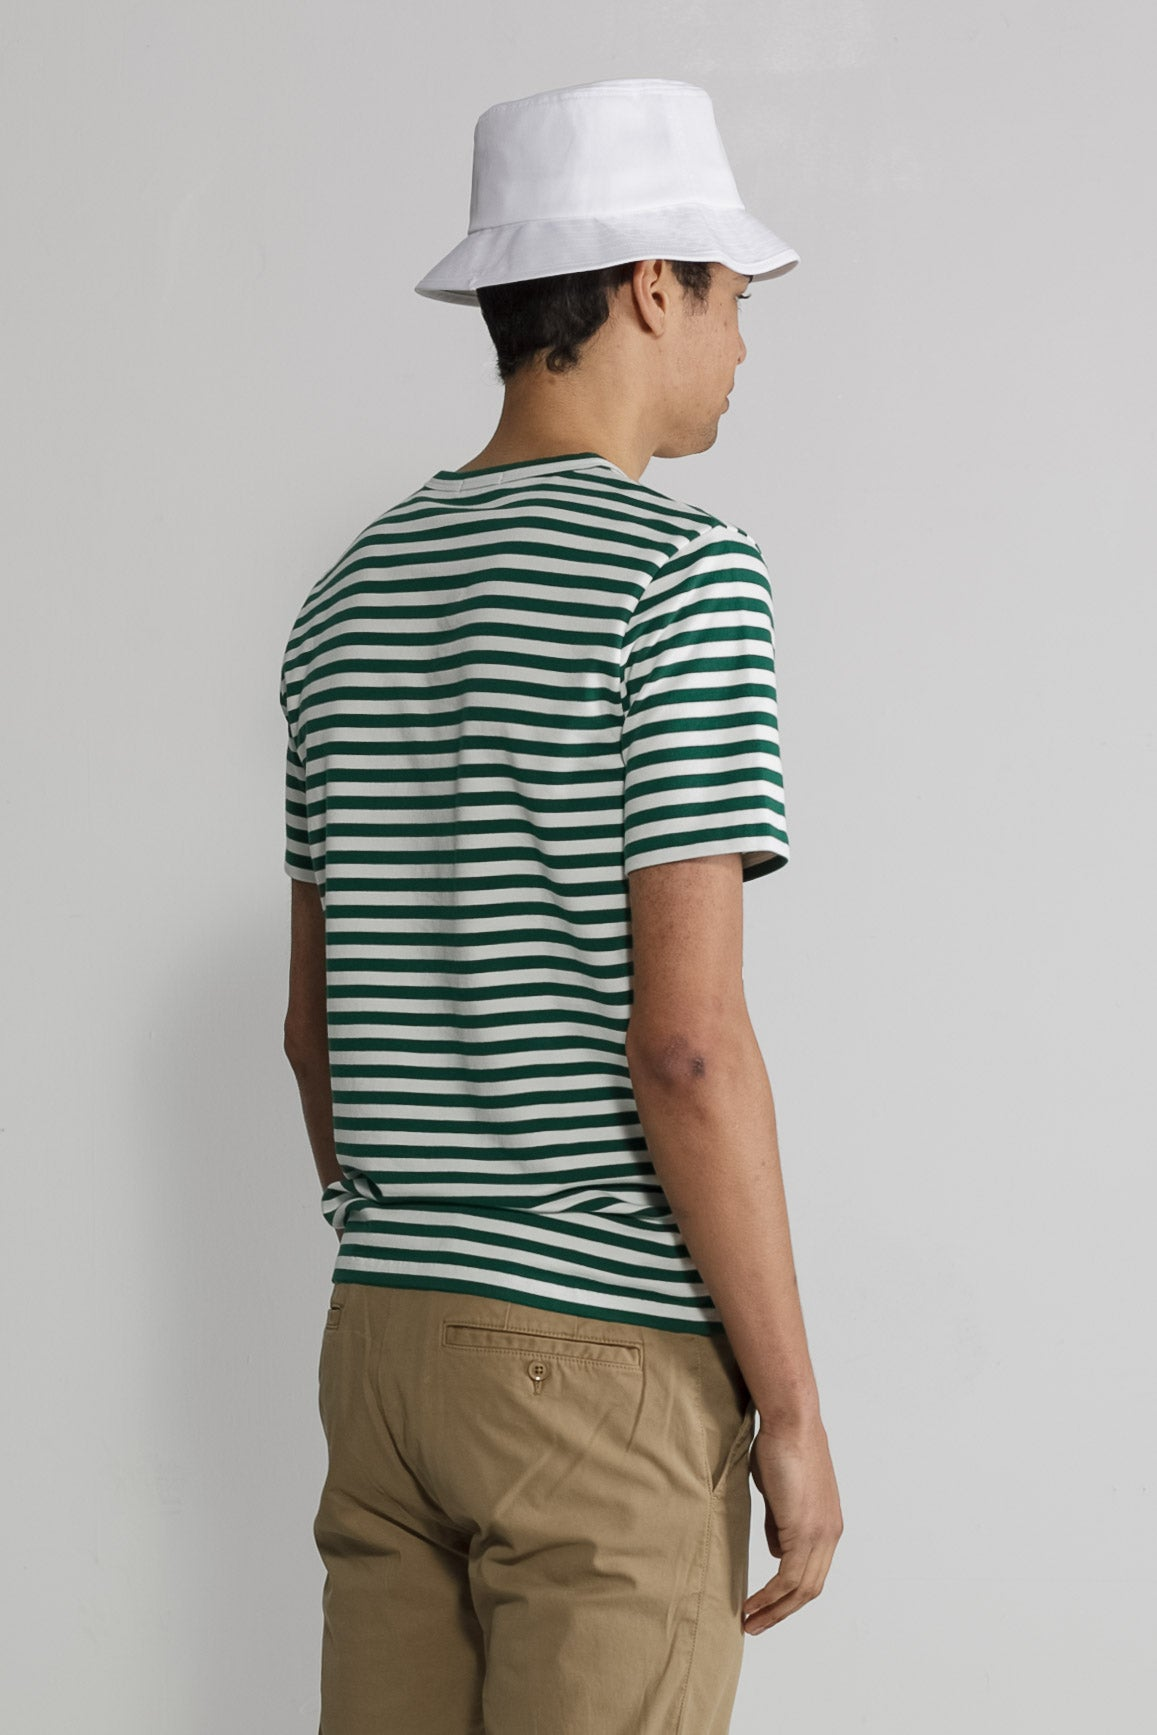 Marine Stripe Crew in White and Green 003